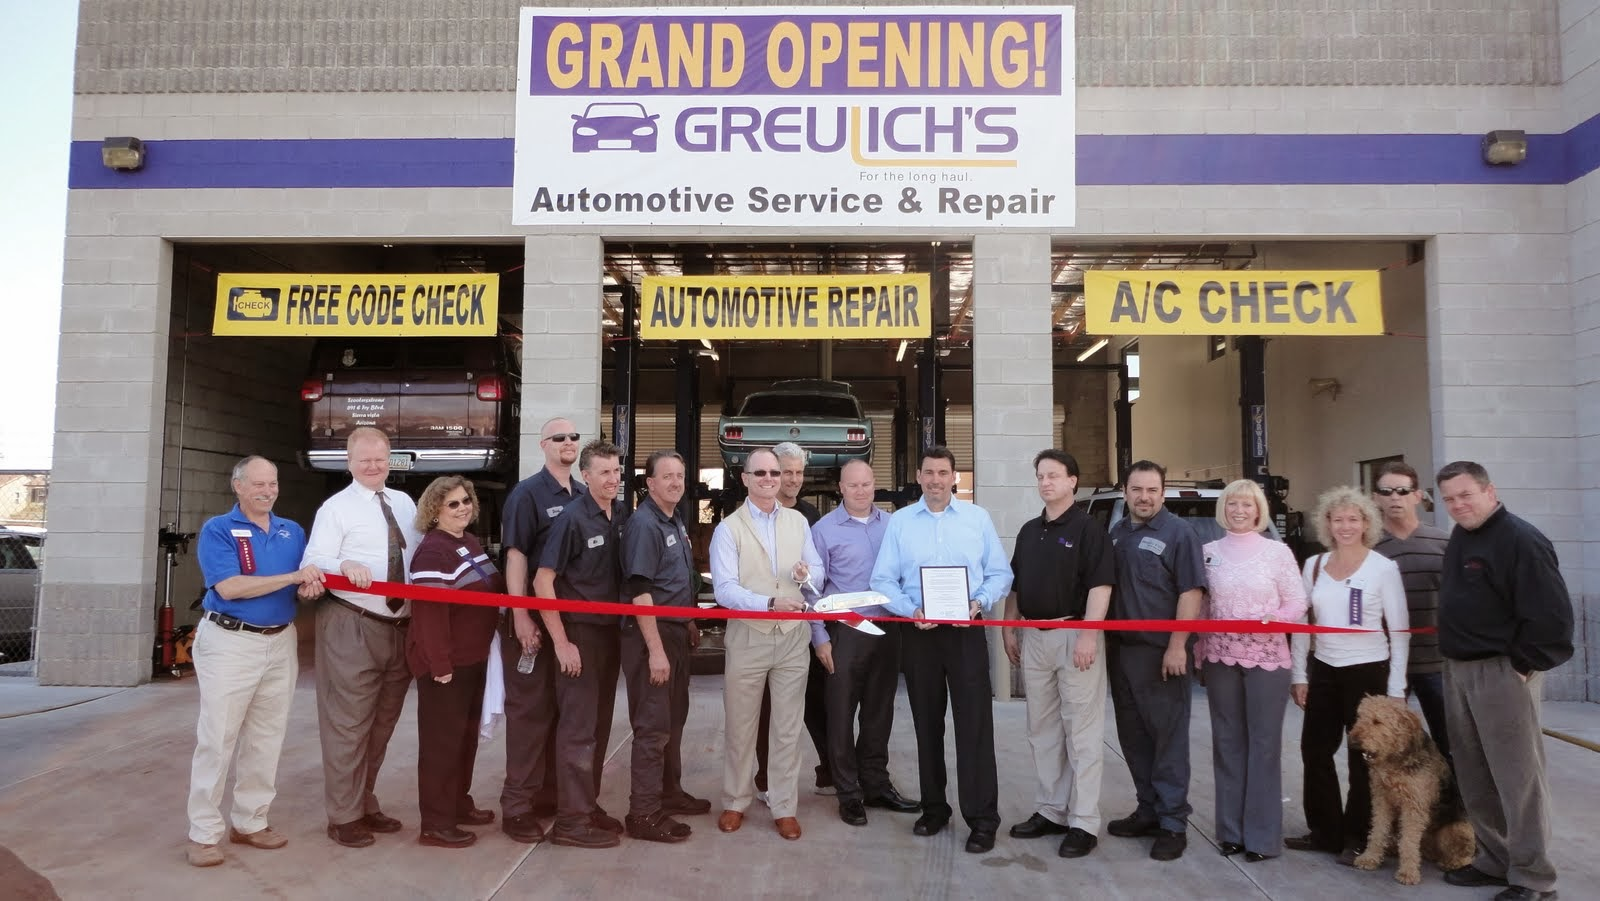 Greulich's Automotive Services has been providing a complete range of automotive services throughout the Phoenix metro area since 1977.  They recently opened two new service facilities in the Tucson area and look forward to creating jobs and providing honest and affordable service for Tucsonans.